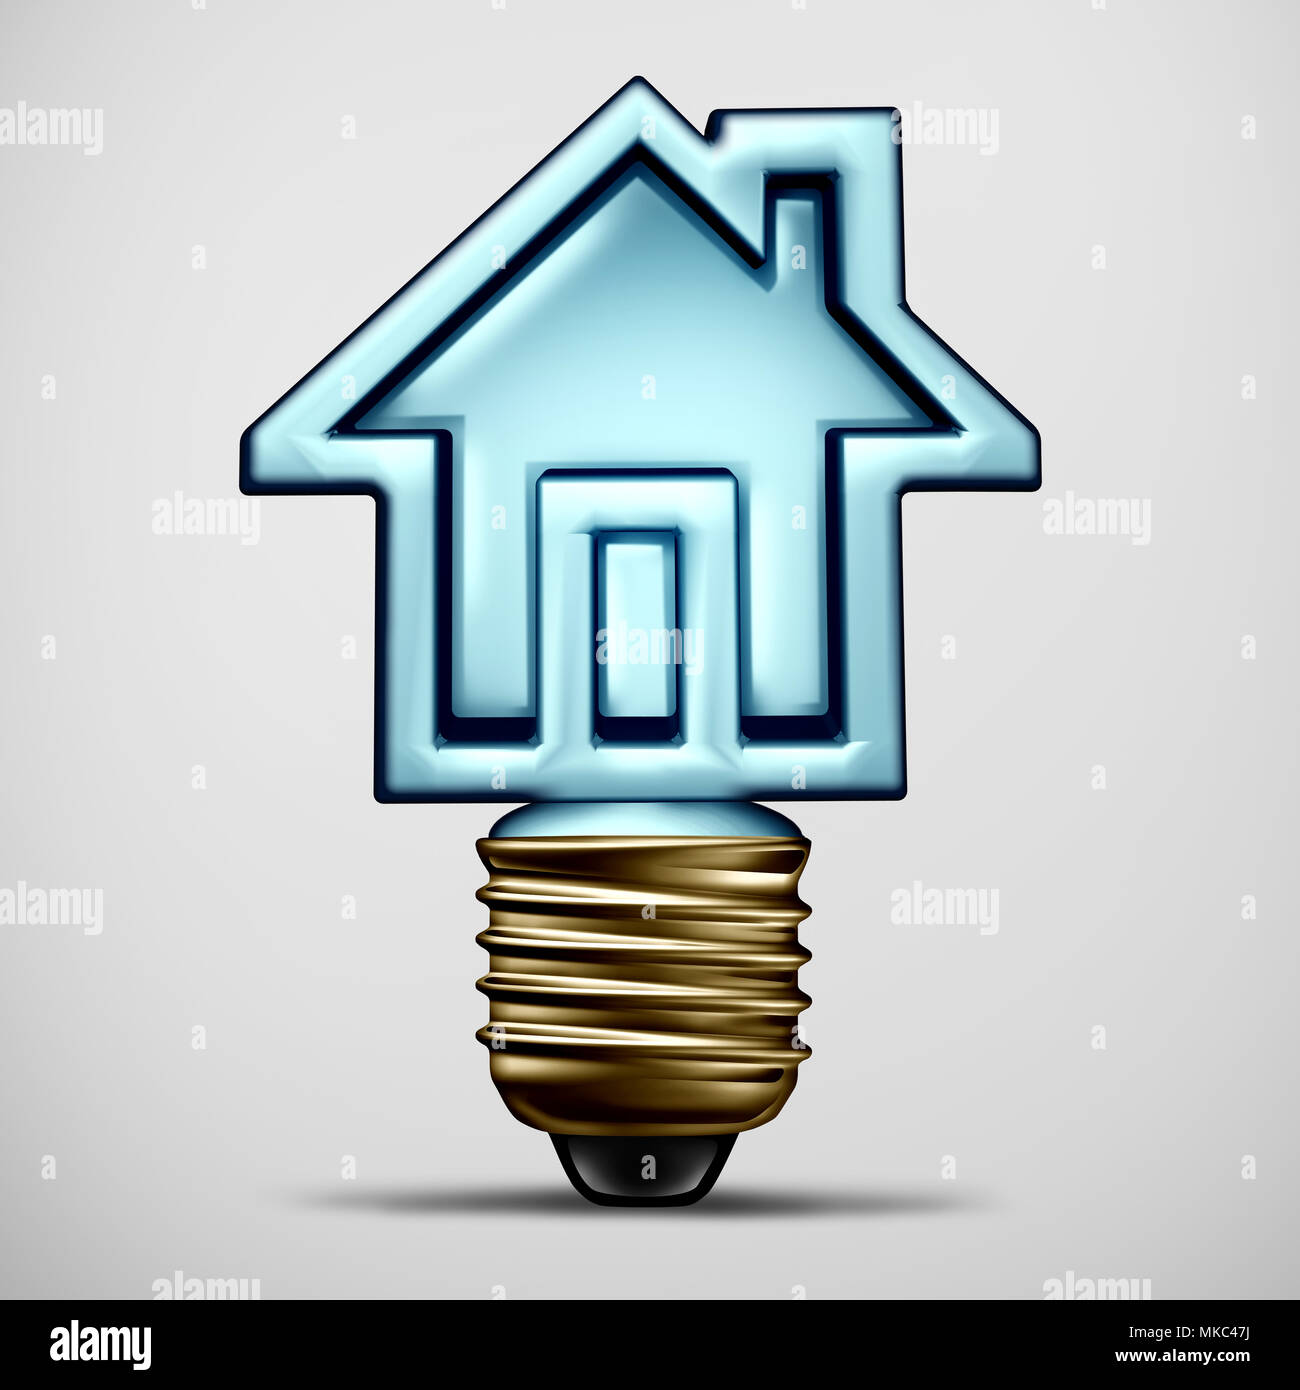 Home idea and house inspiration as a 3D illustration of a residential solution symbol with a lightbulb shaped as a residence. - Stock Image